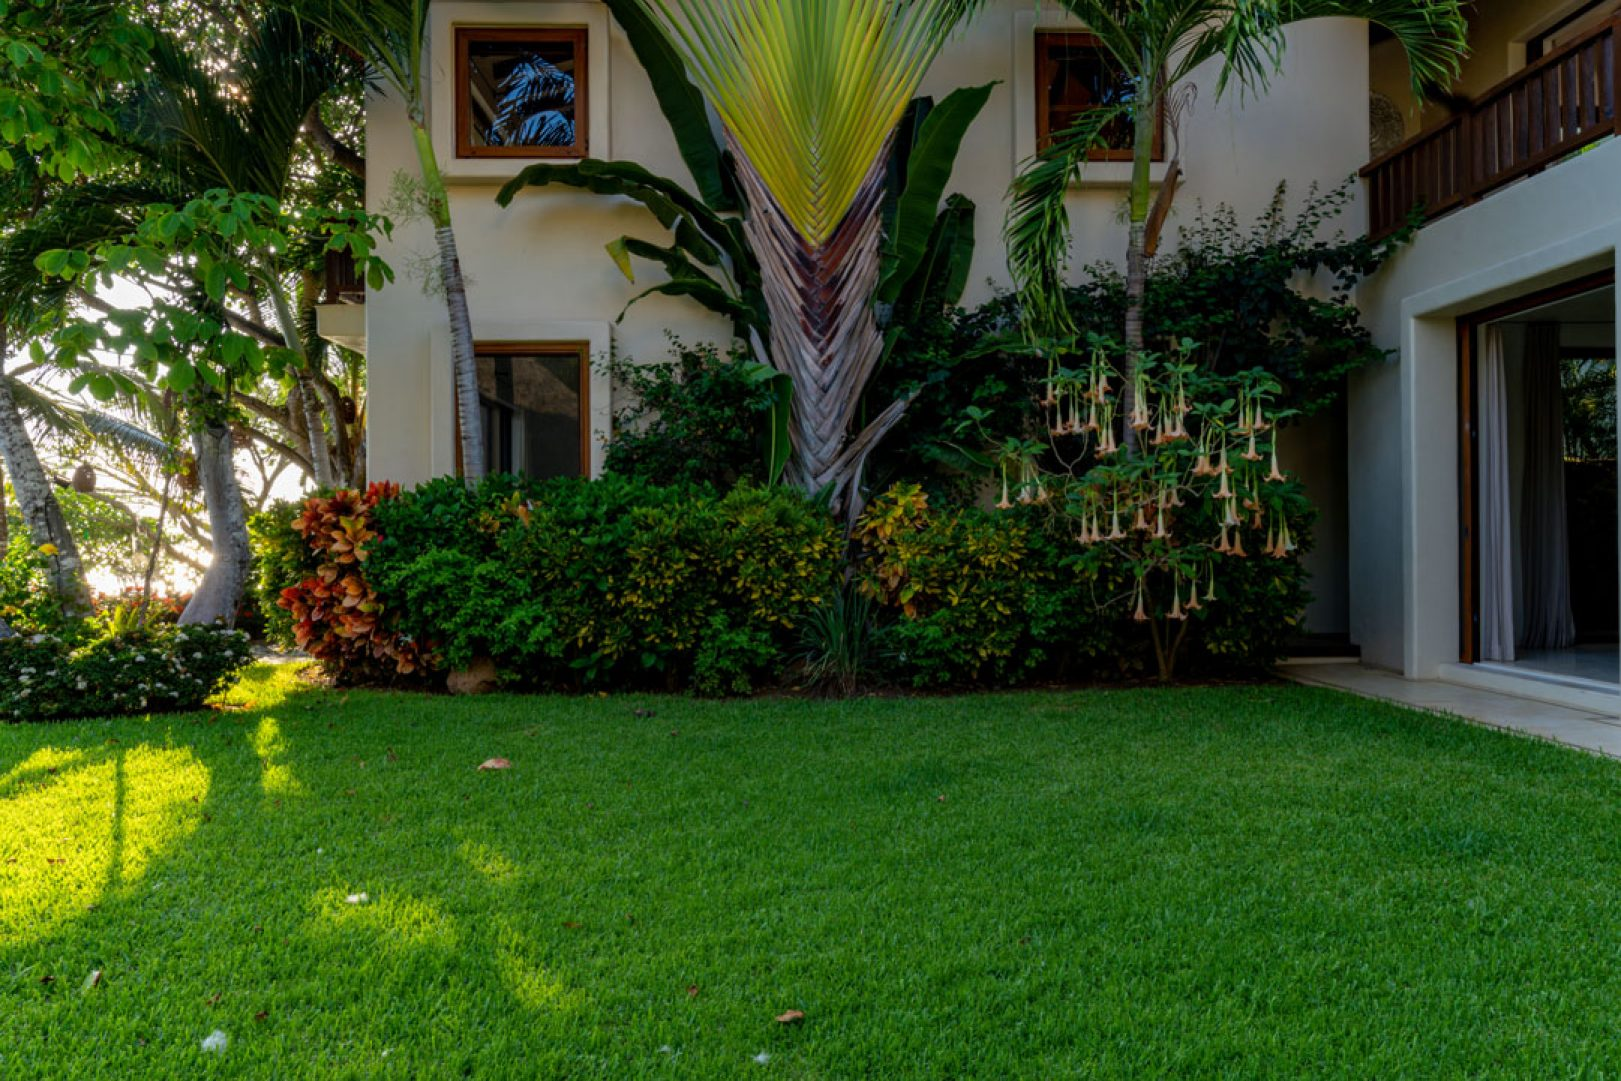 Garden view from palapa